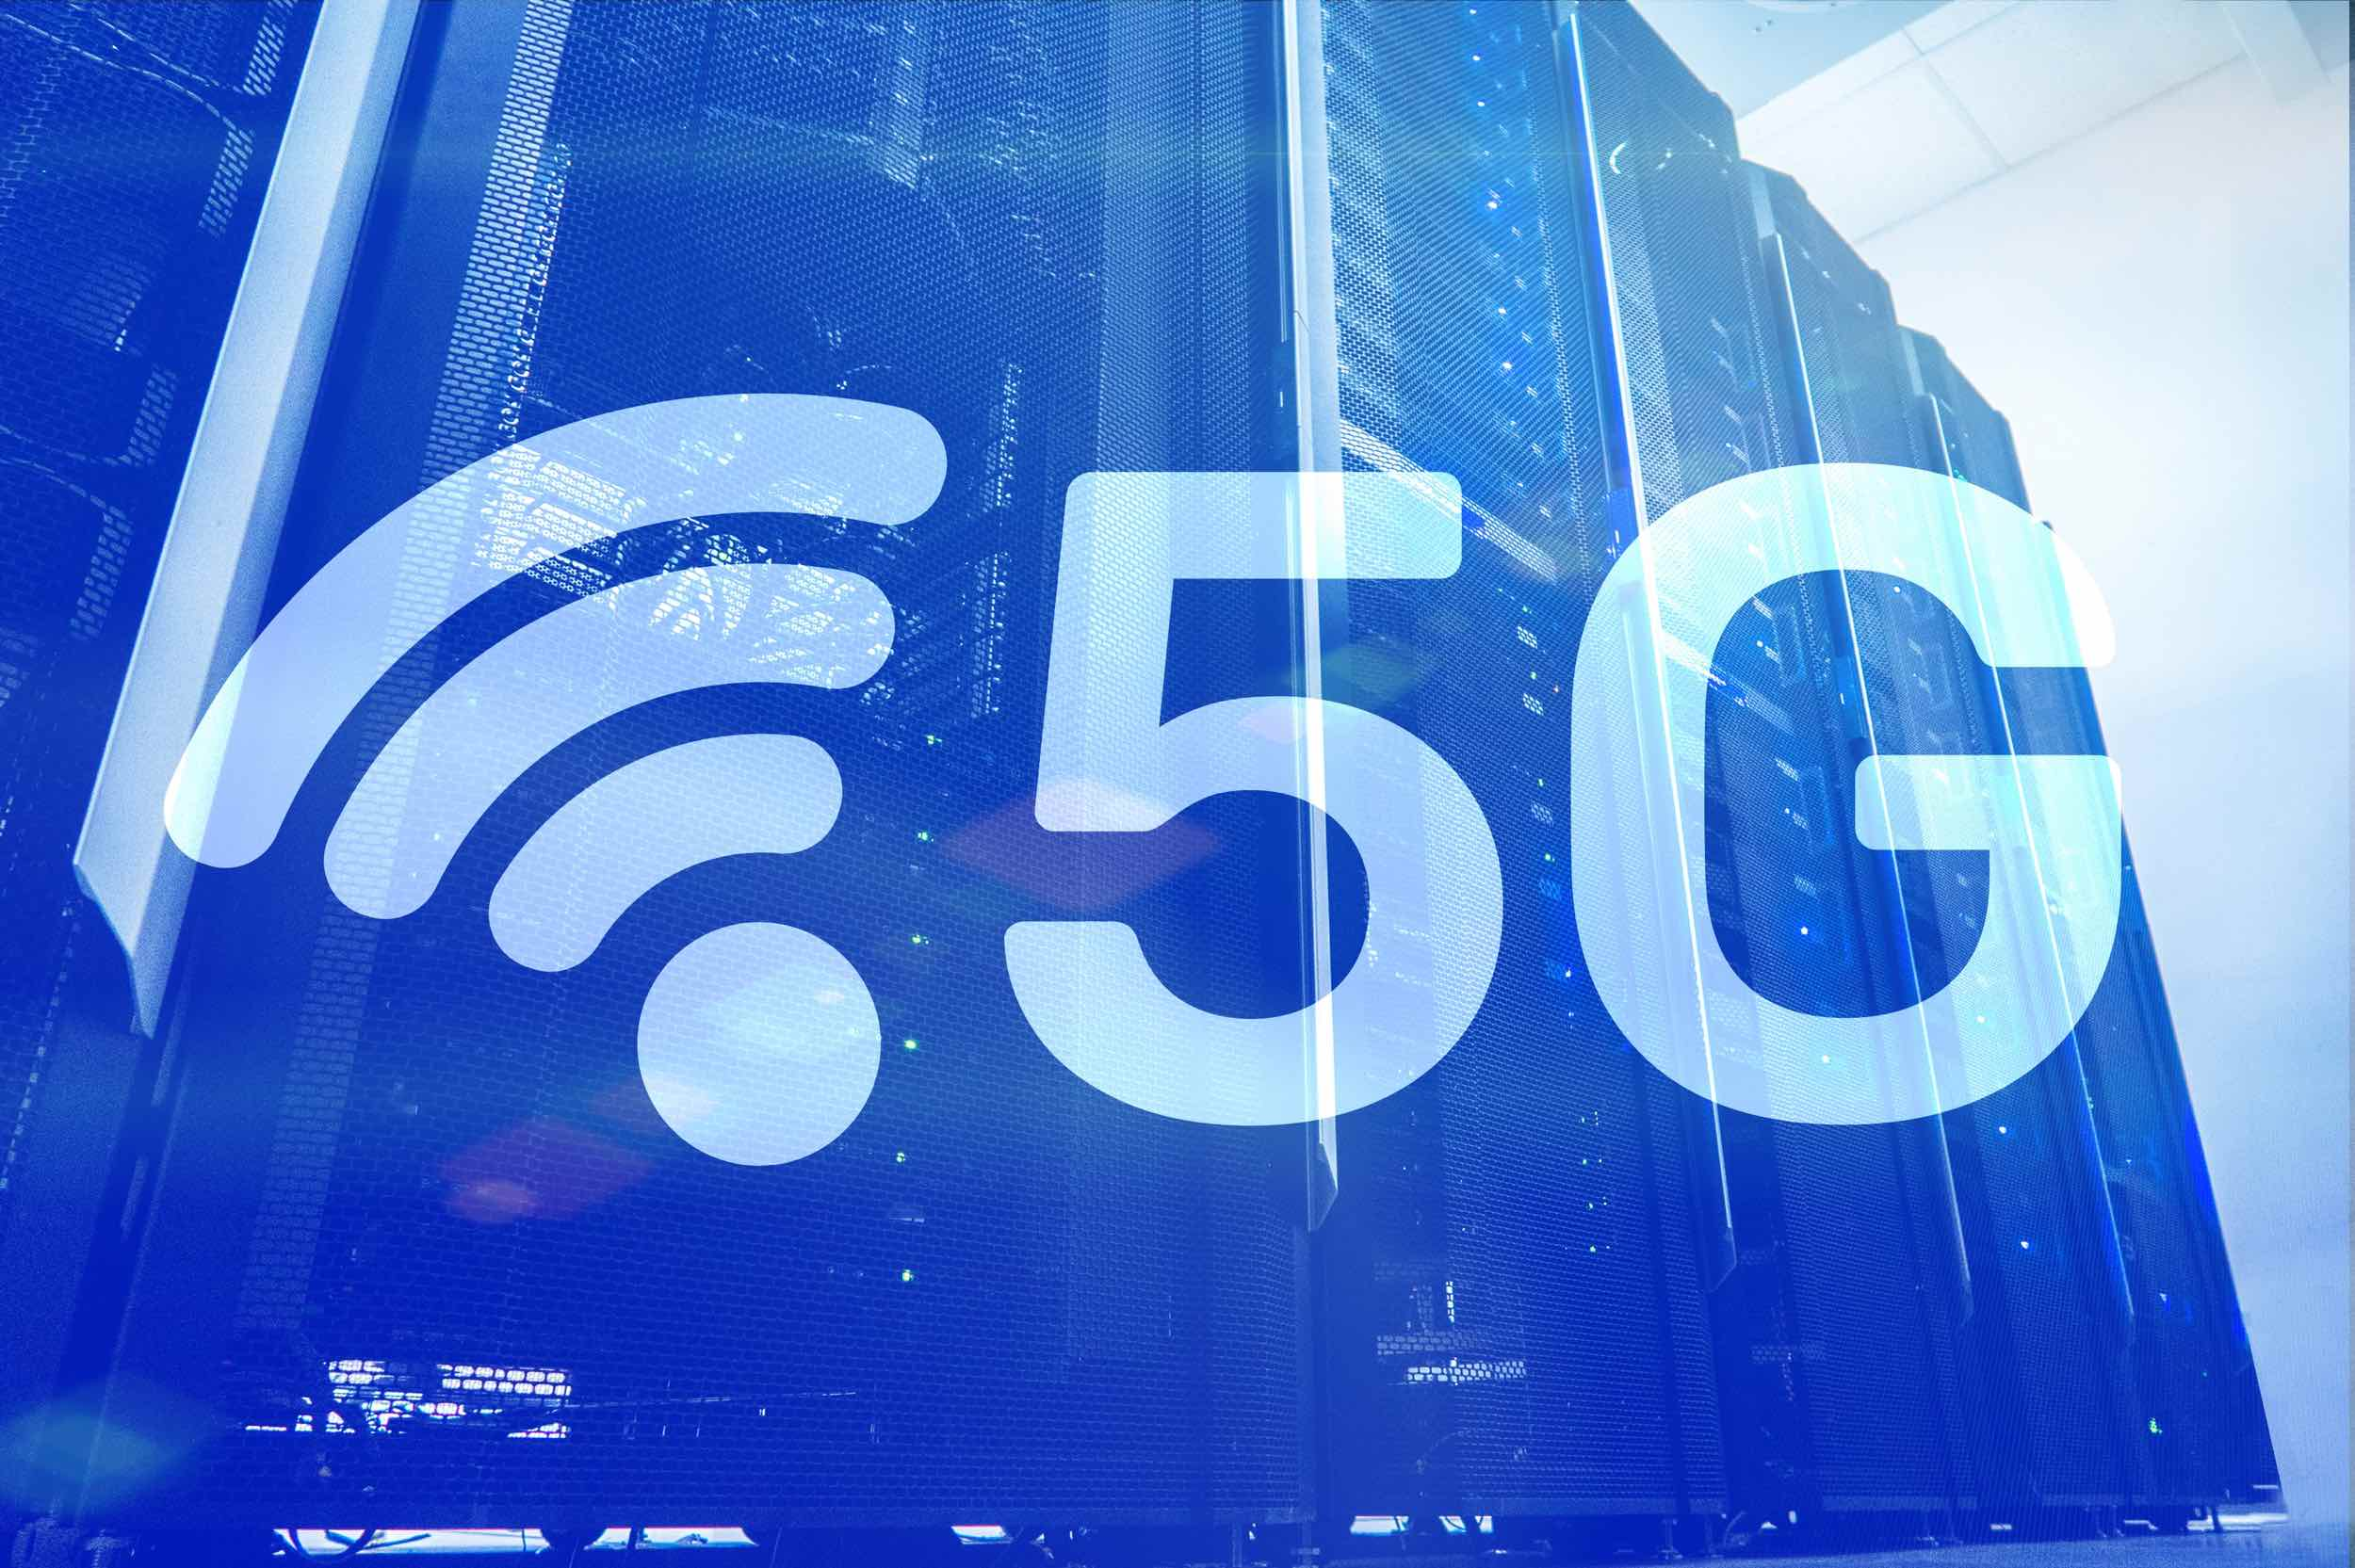 5G Picture